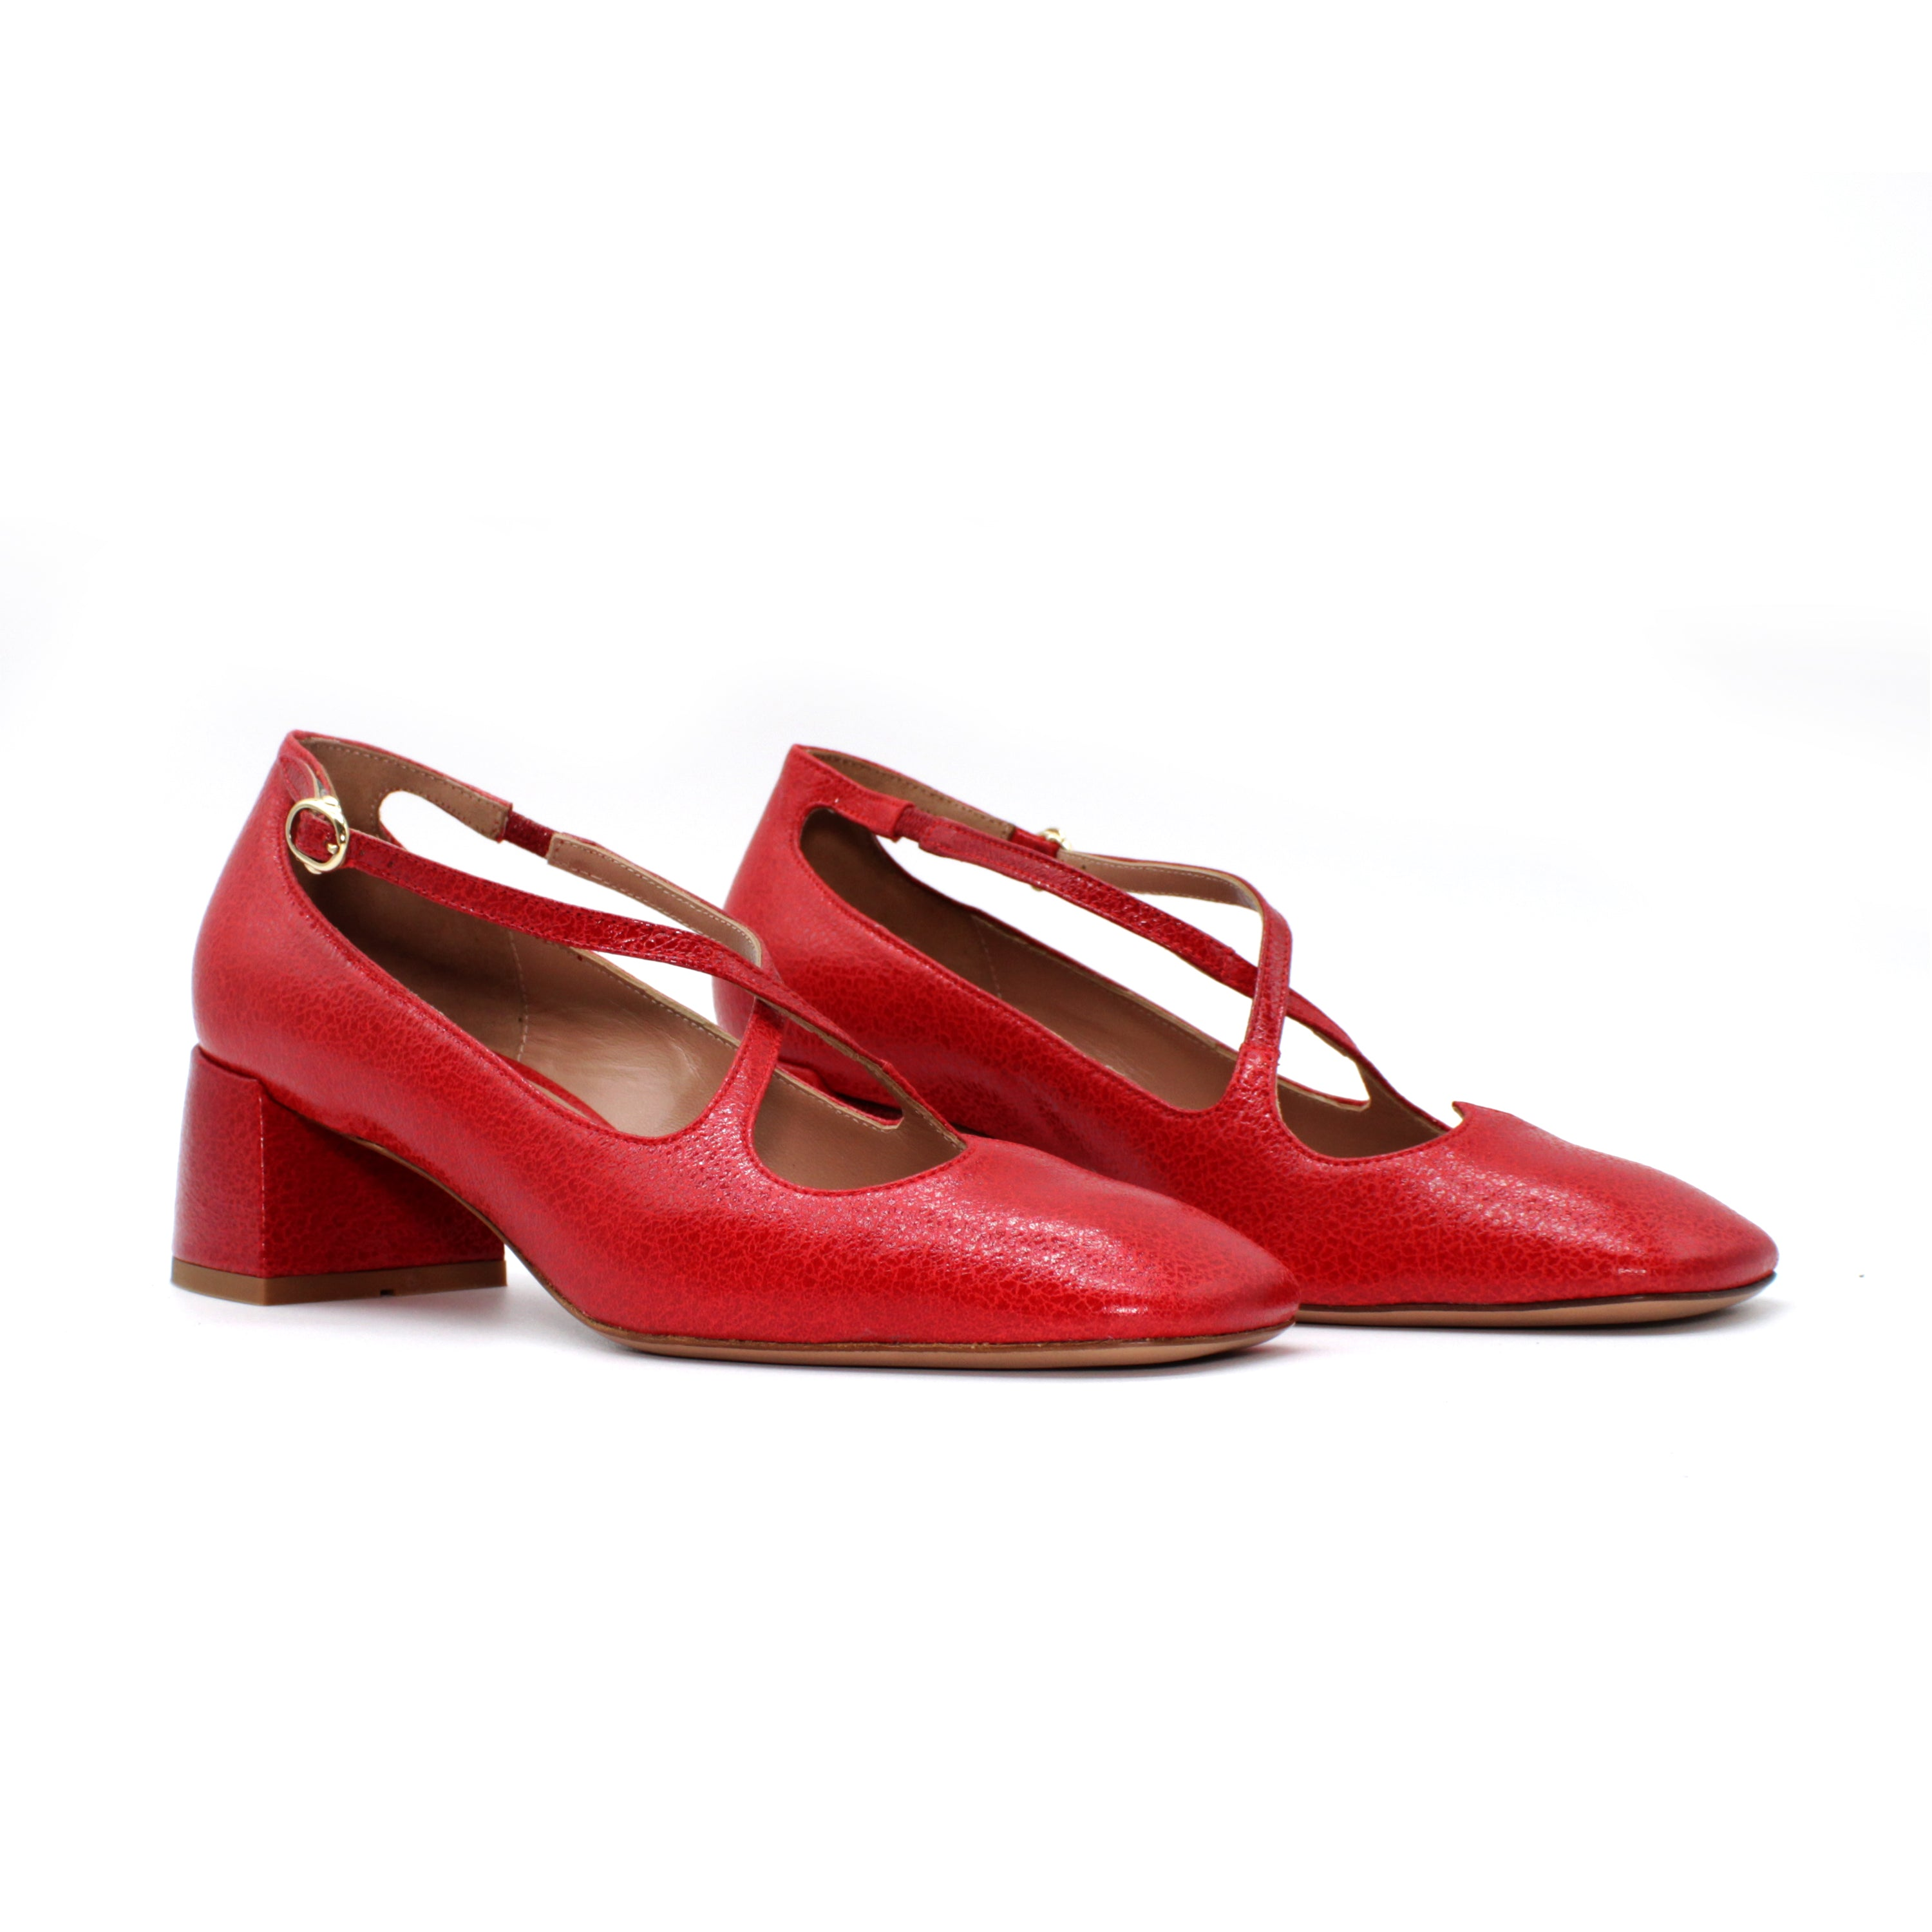 "Pump Two for Love in capra ""new vintage"" color rosso"